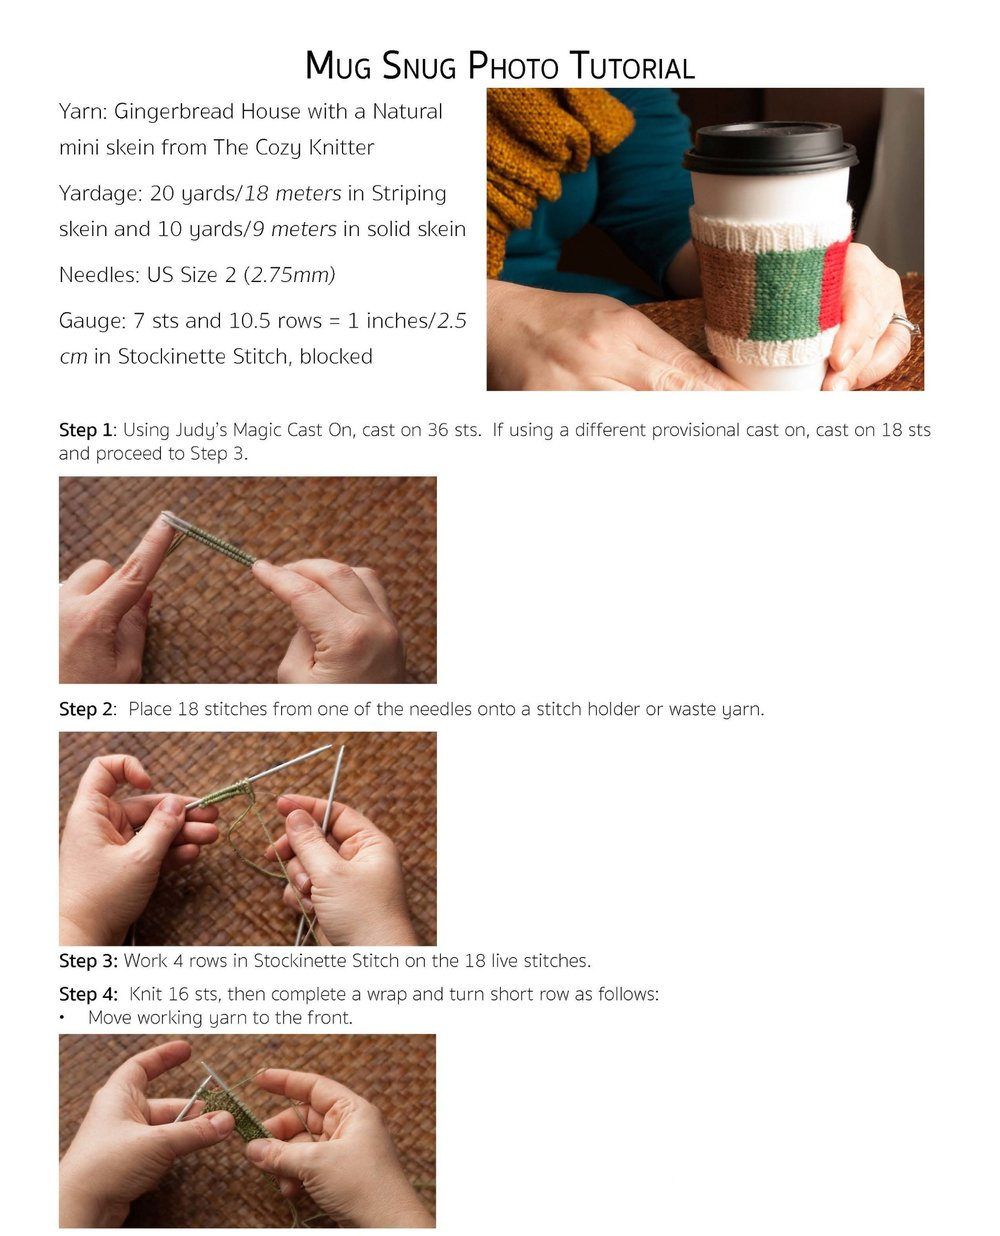 Mug Snug Photo Tutorial _Page_1.jpg